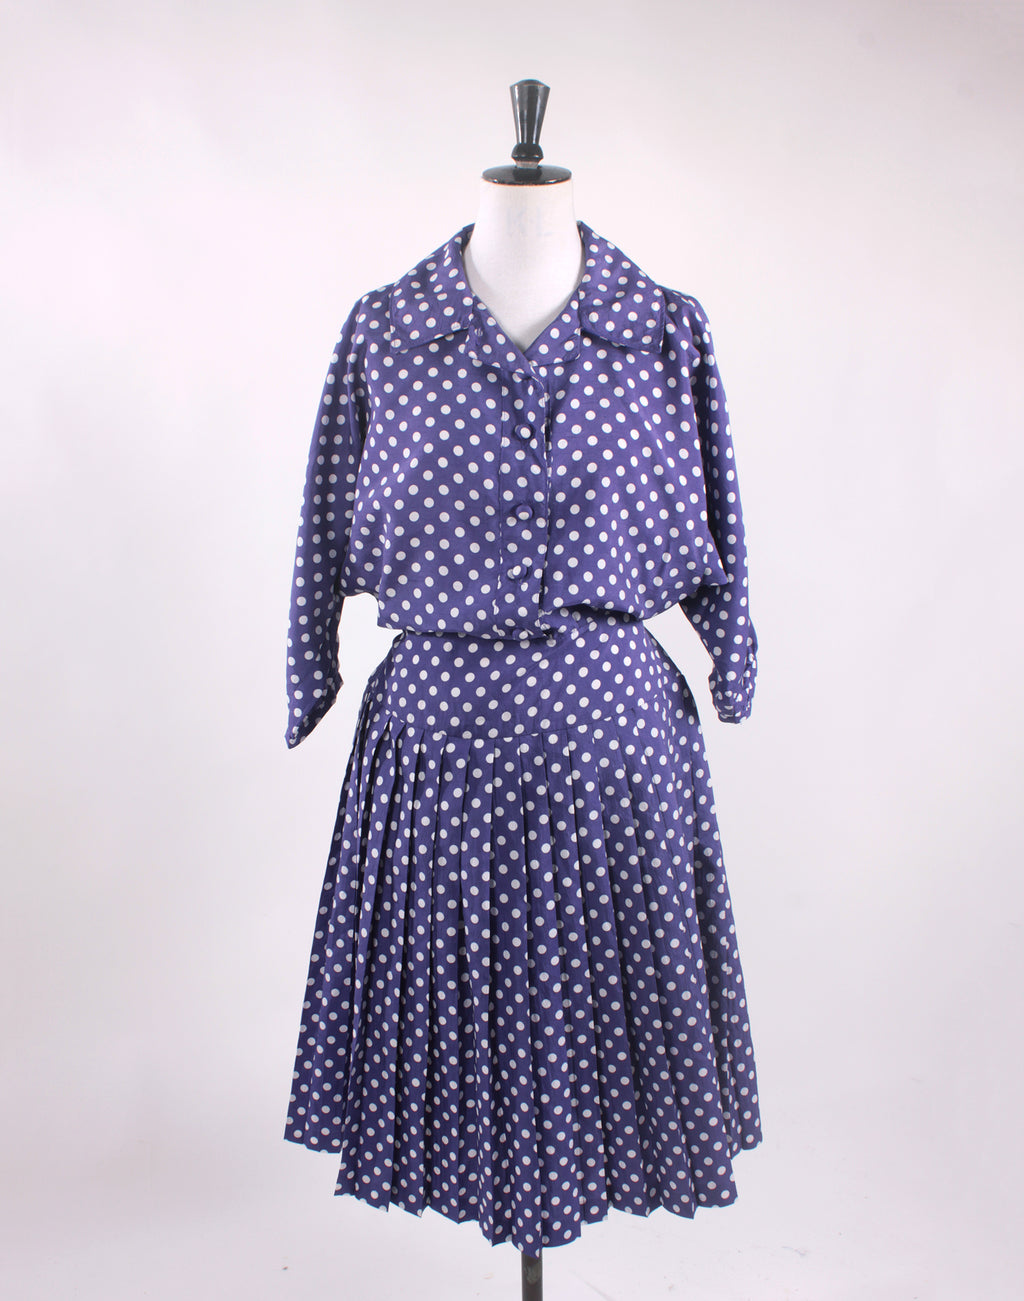 Vintage 80's Purple Polka Dot Pleated Skirt Dress